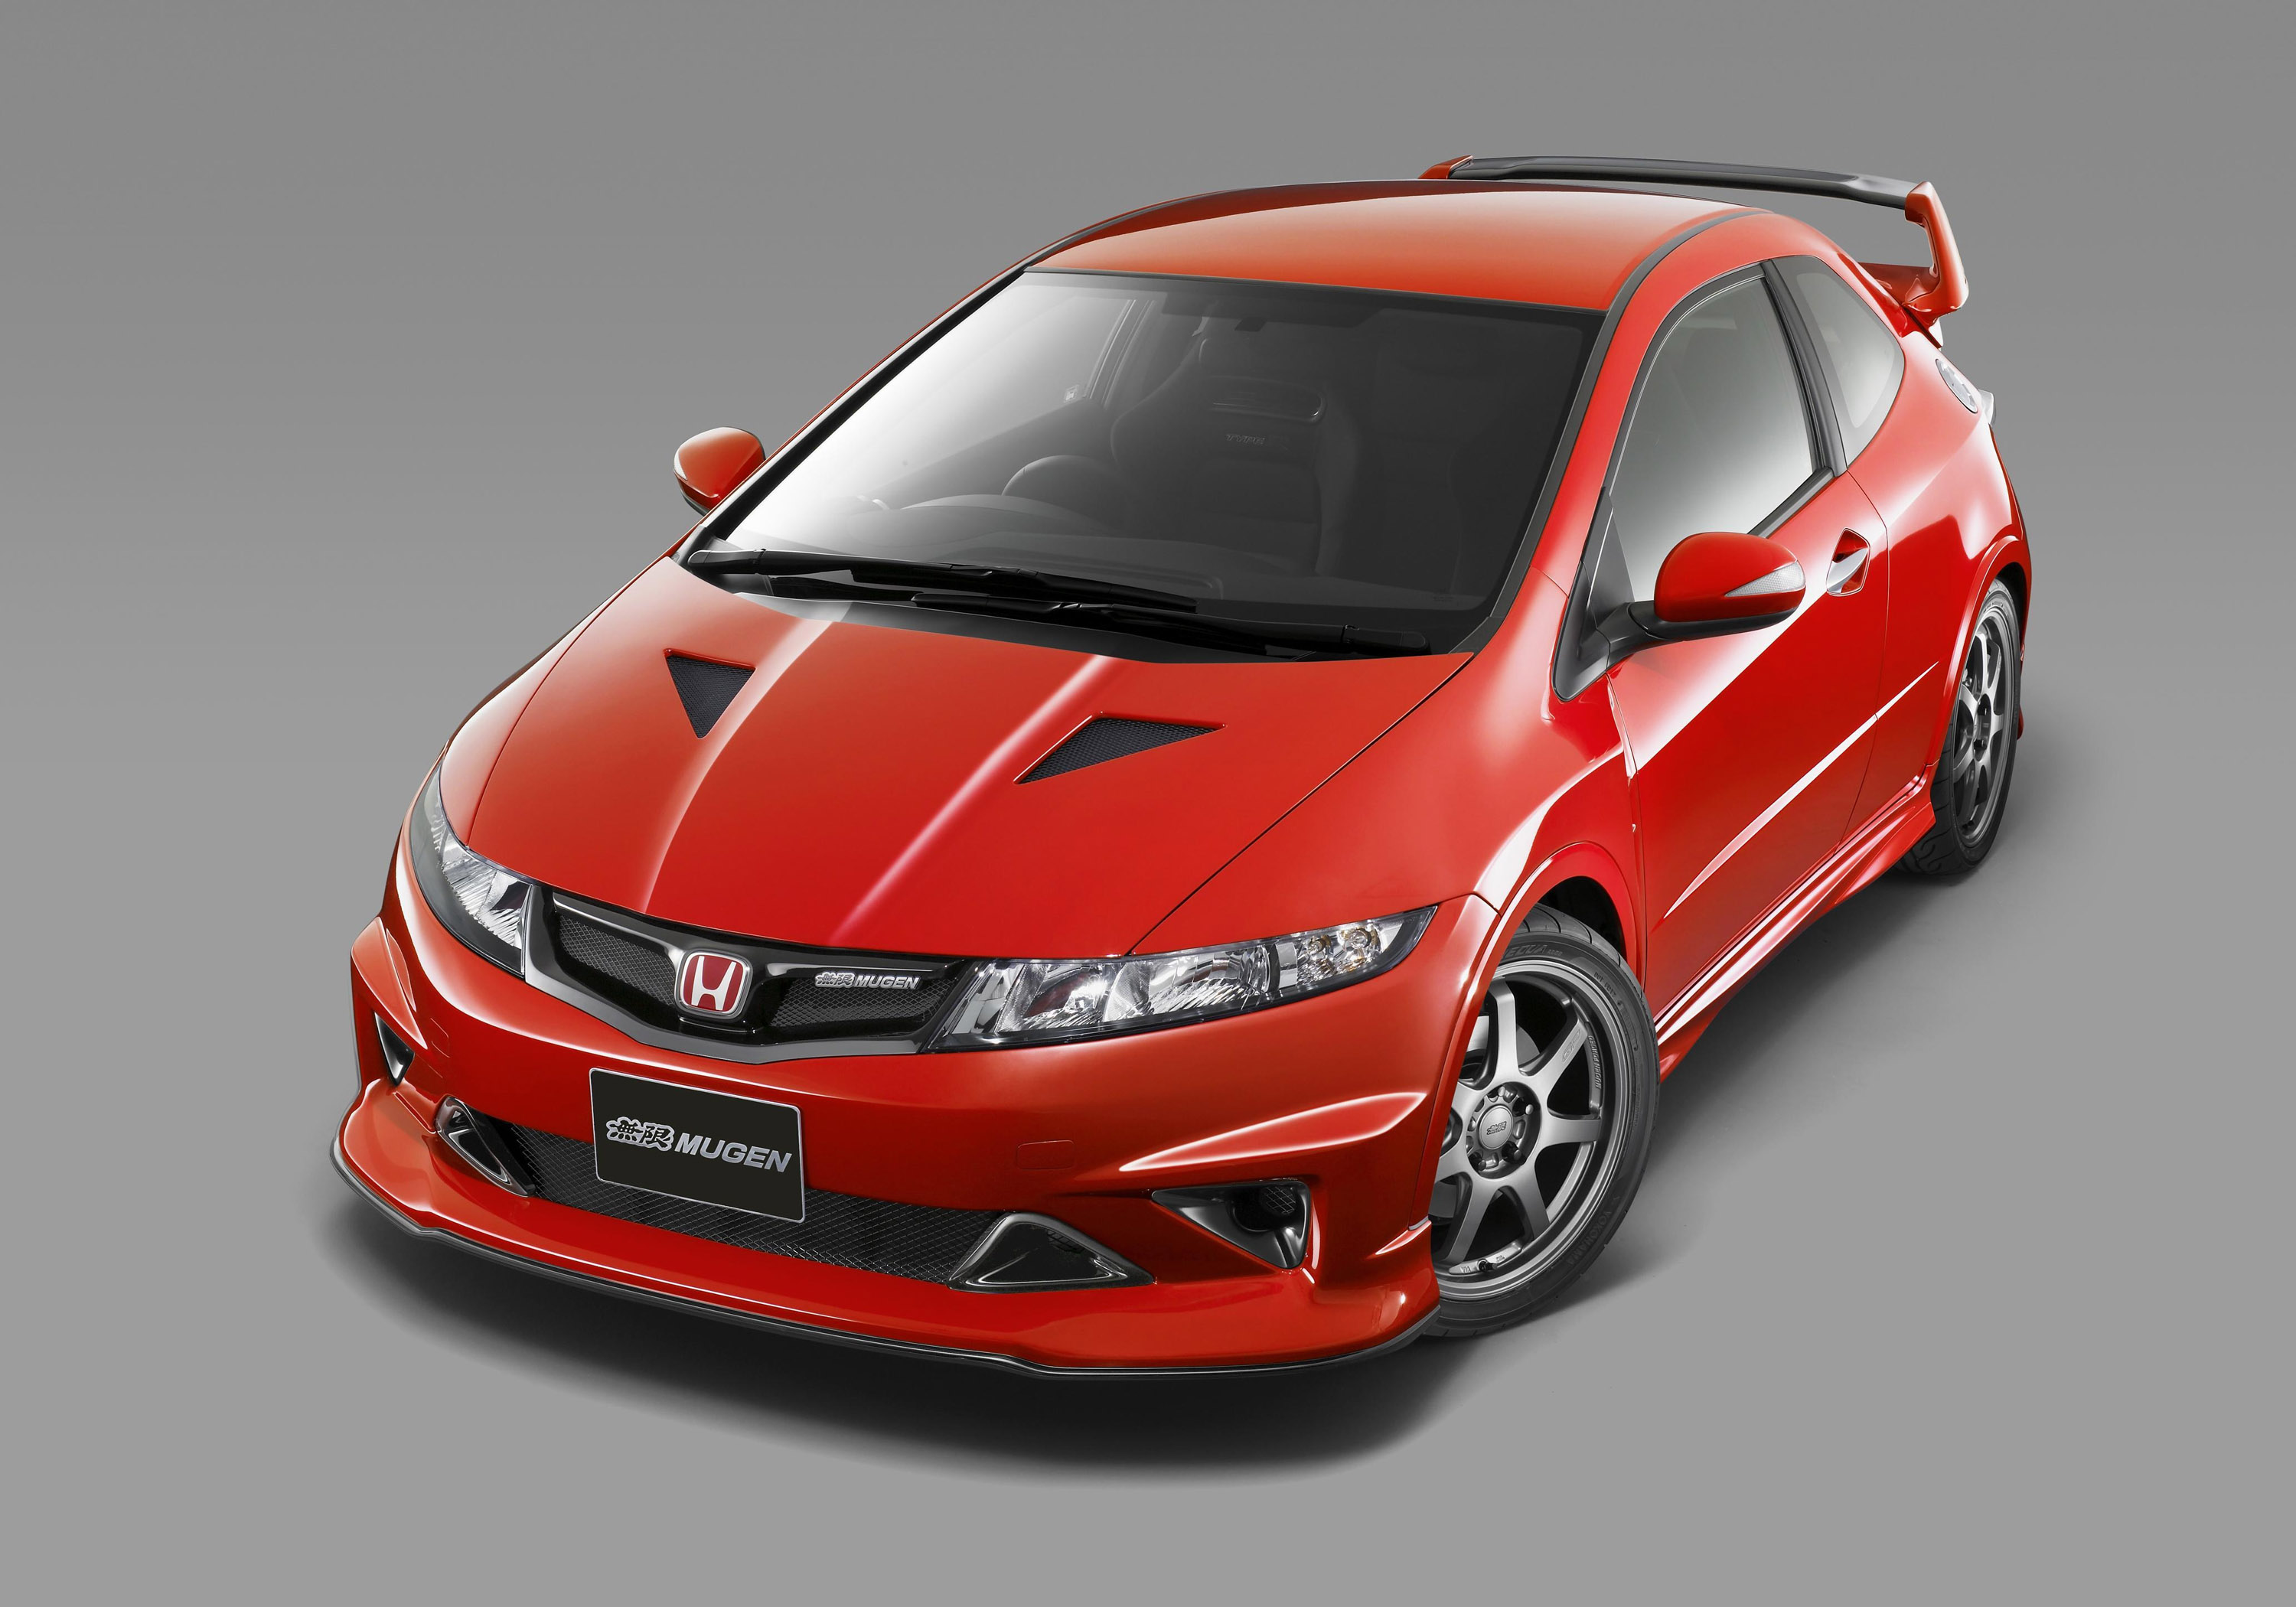 Honda civic type r mugen prototype jegs com car truck motorcycle show park your favorite rides here for all to see pinterest honda civic honda and